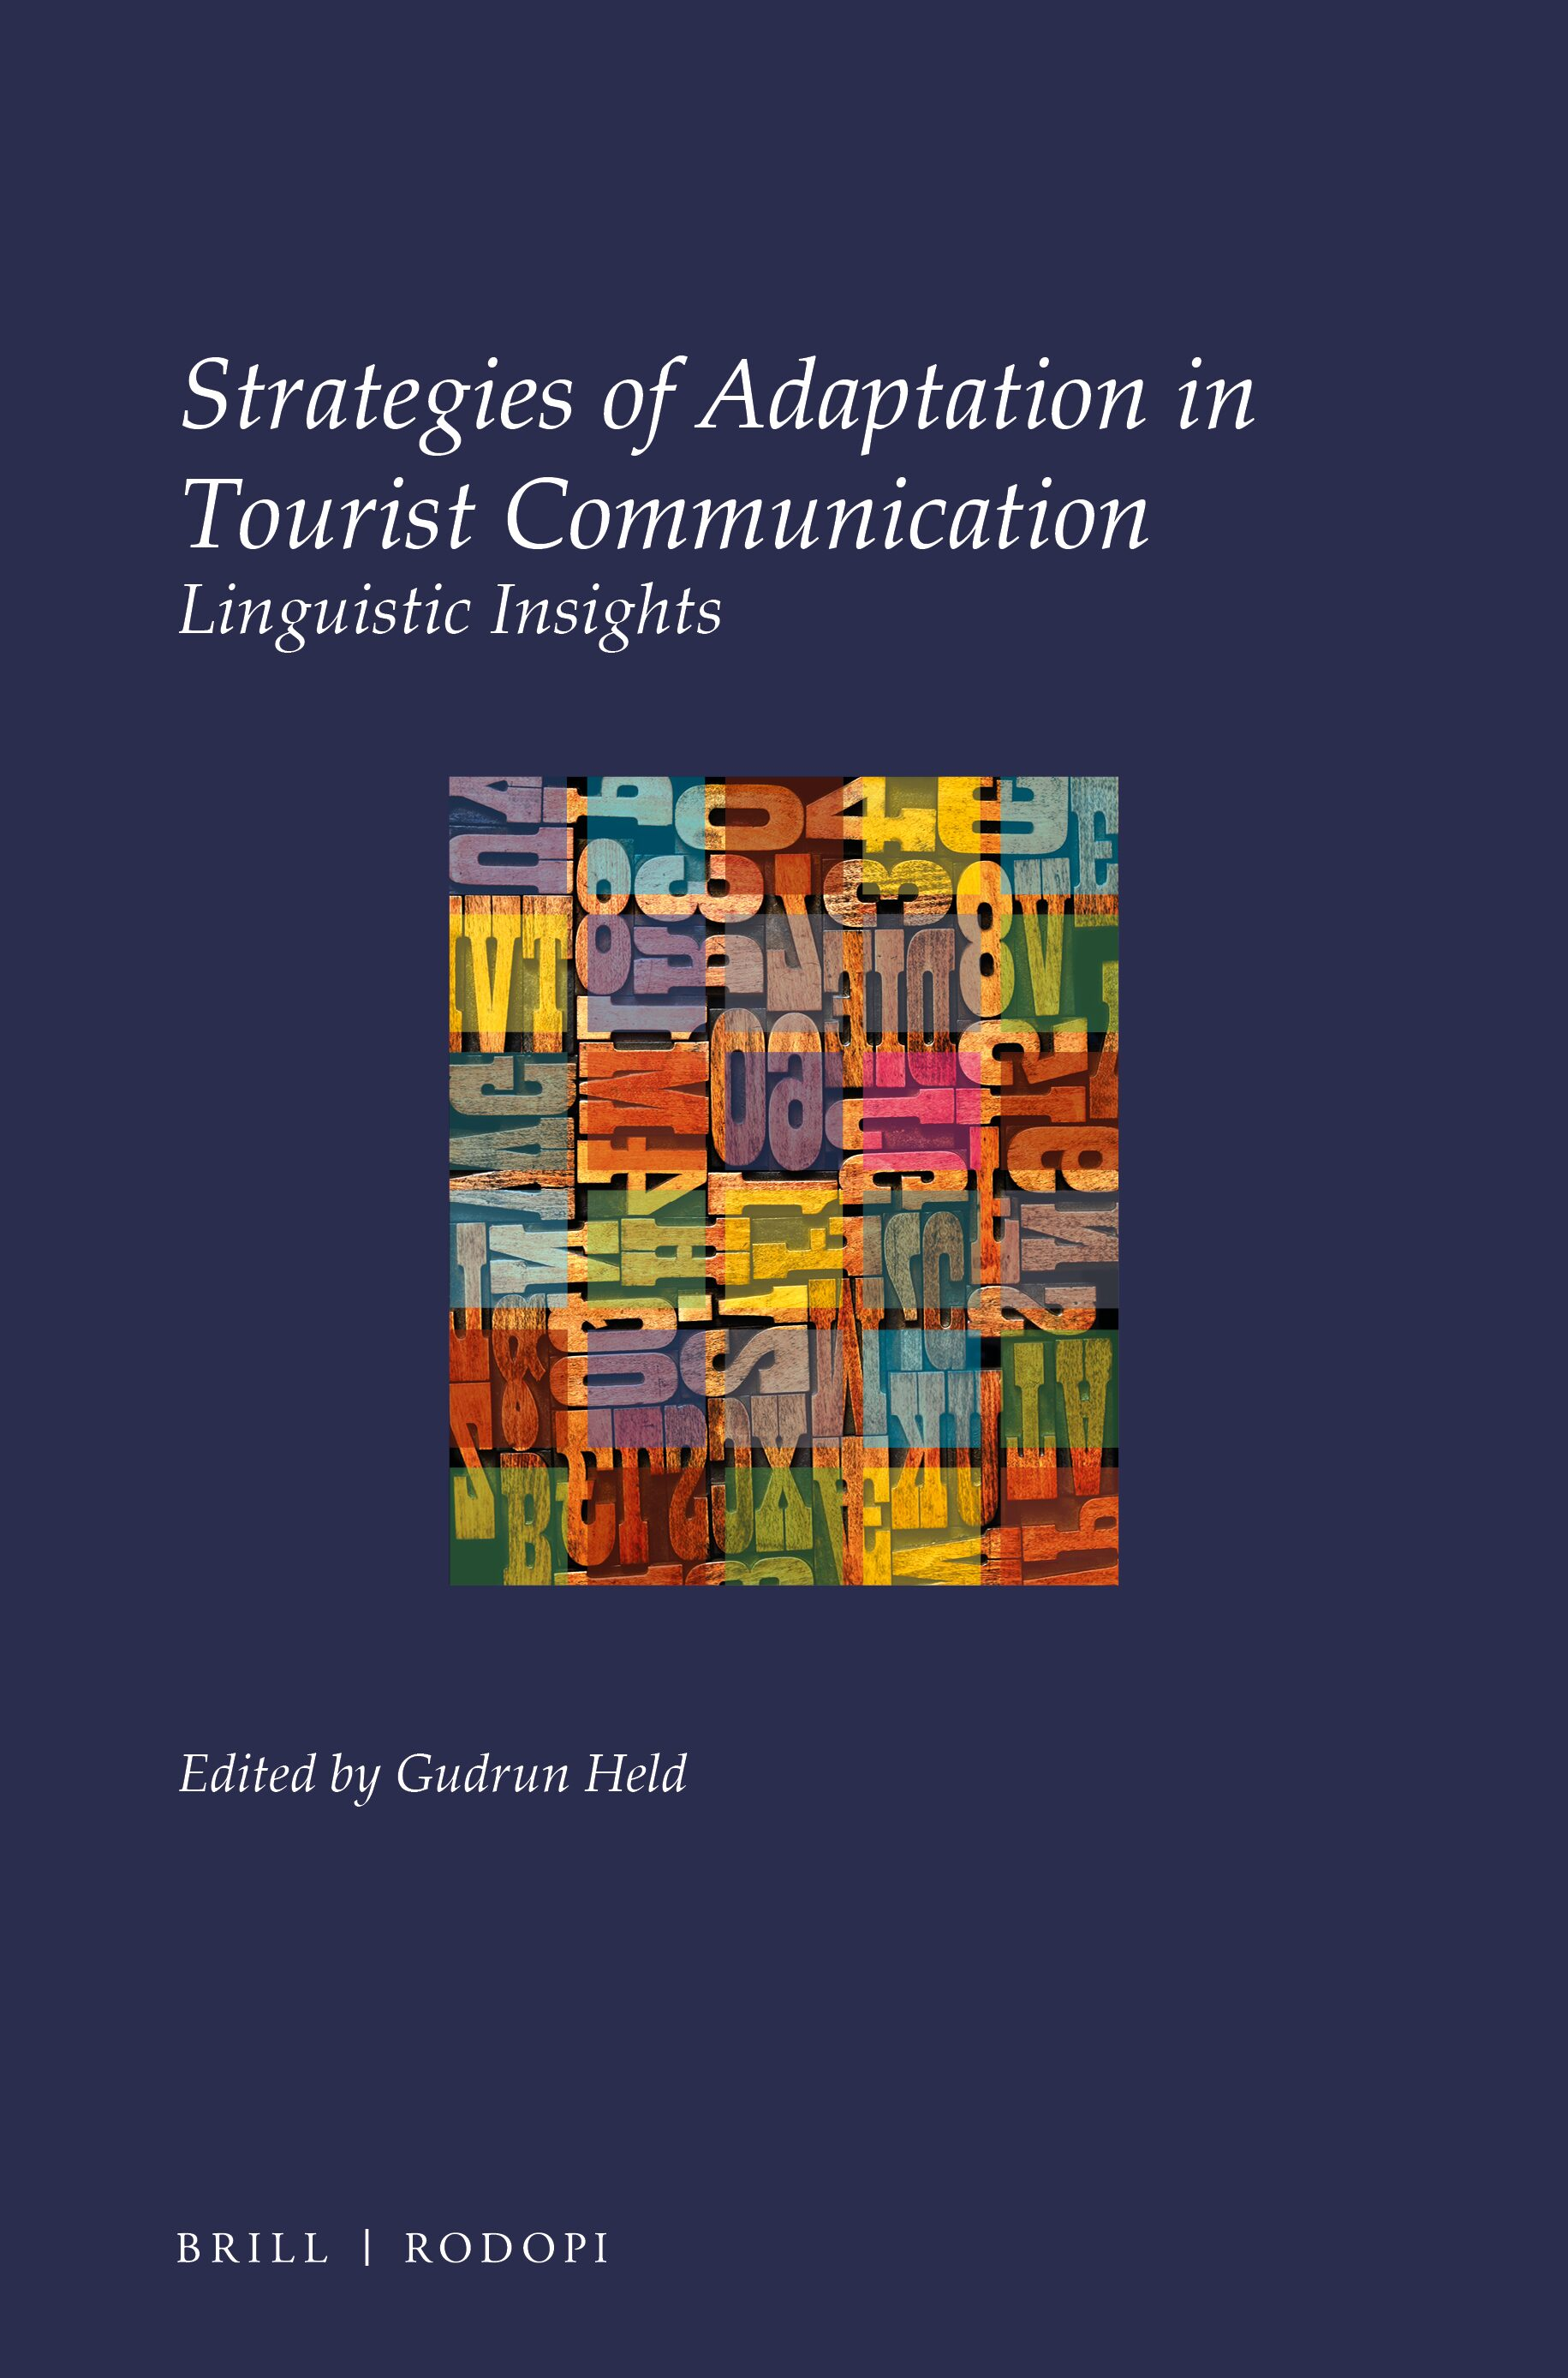 Tripadvisor And Tourism The Linguistic Behaviour Of Consumers In The Tourism Industry 2 In Strategies Of Adaptation In Tourist Communication